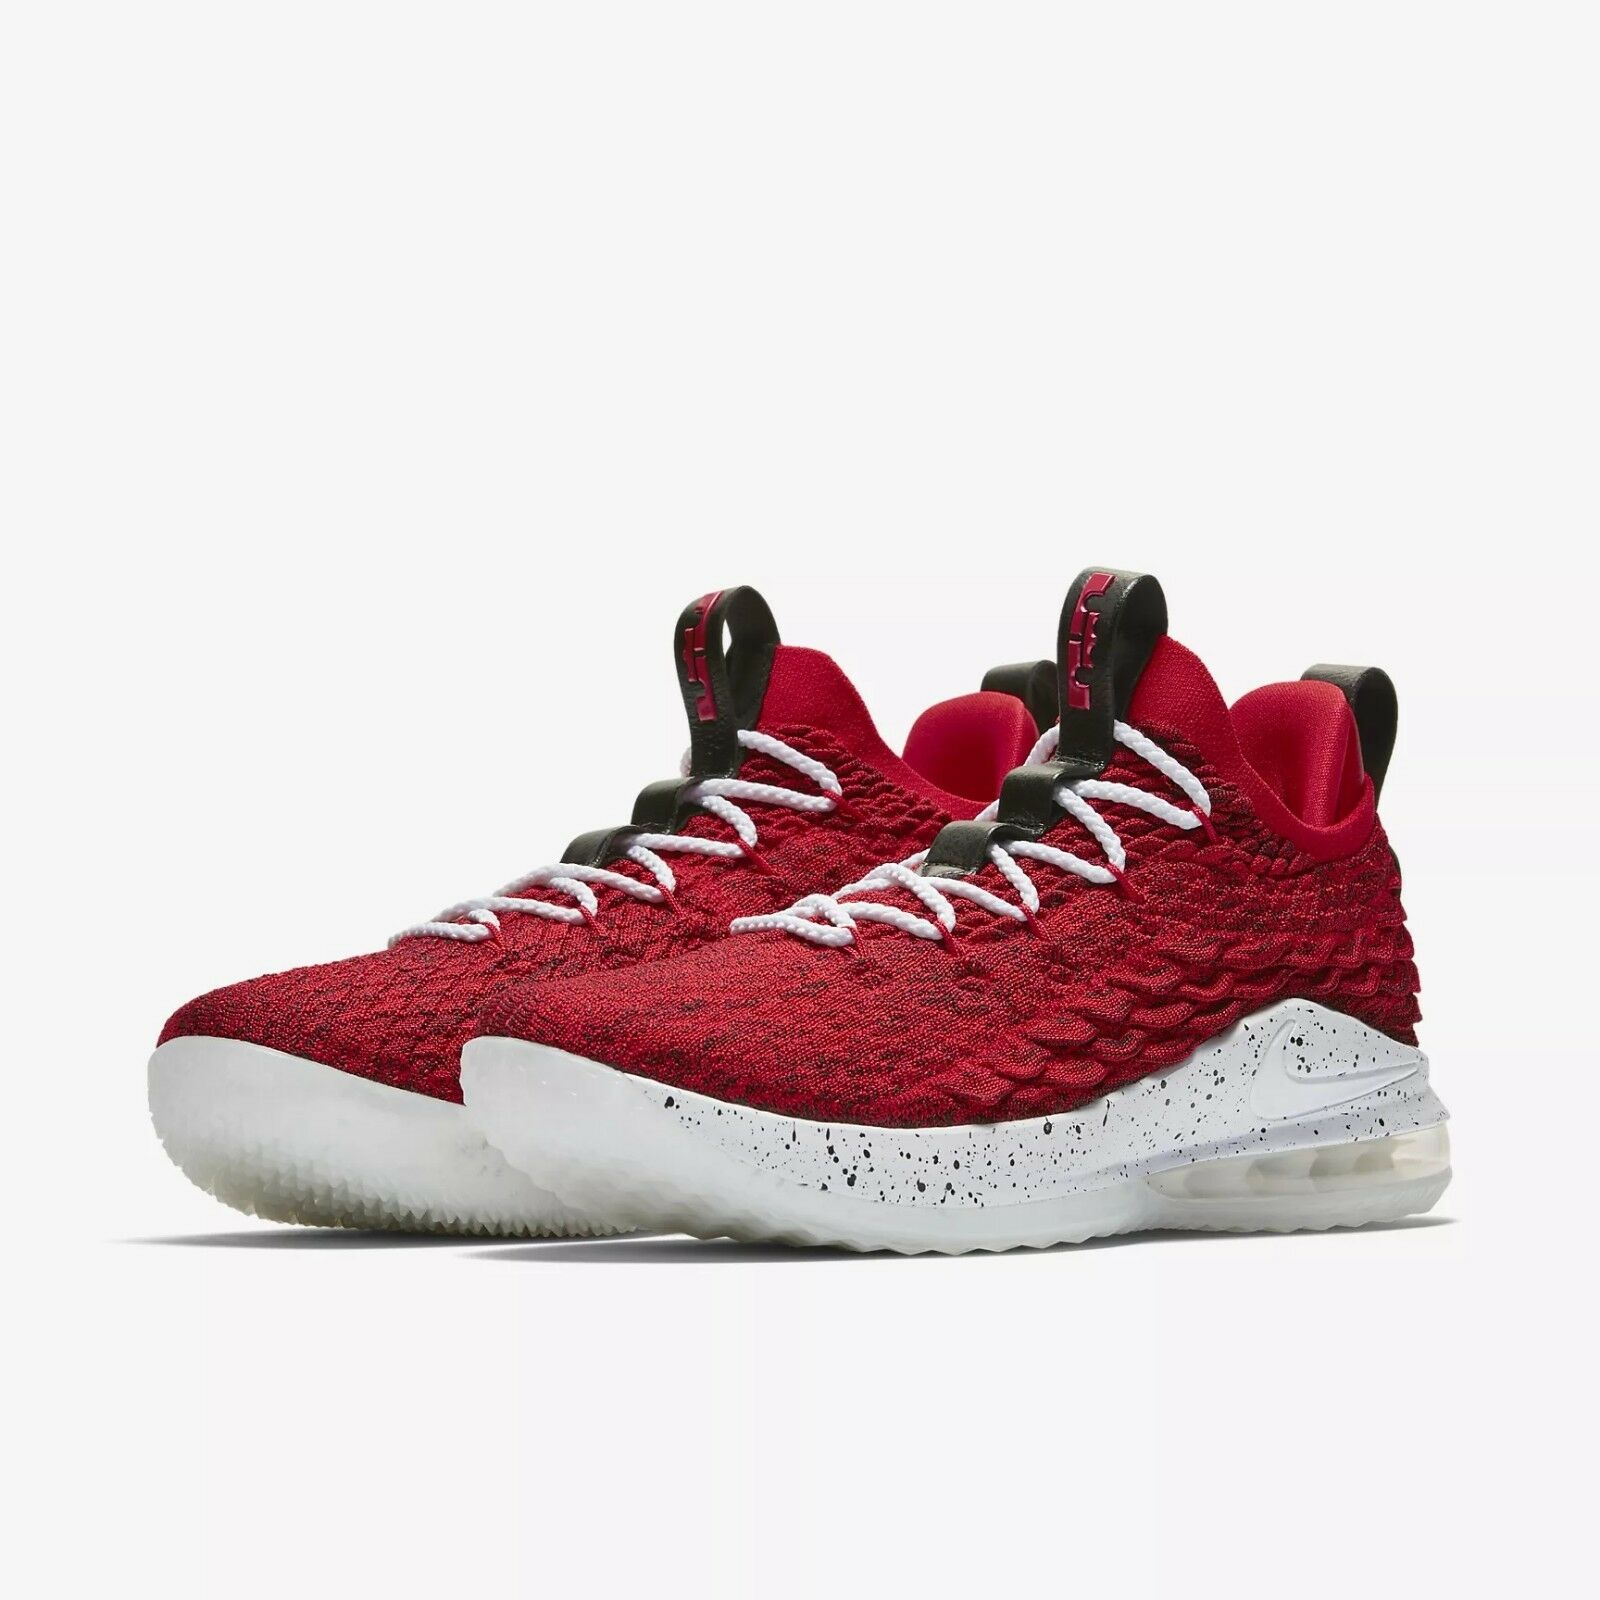 8fd50a89d97 ... Nike LeBron 15 Low Men s Basketball Basketball Basketball Shoes  Lifestyle Flyknit Comfy Sneakers 4fadd3 ...